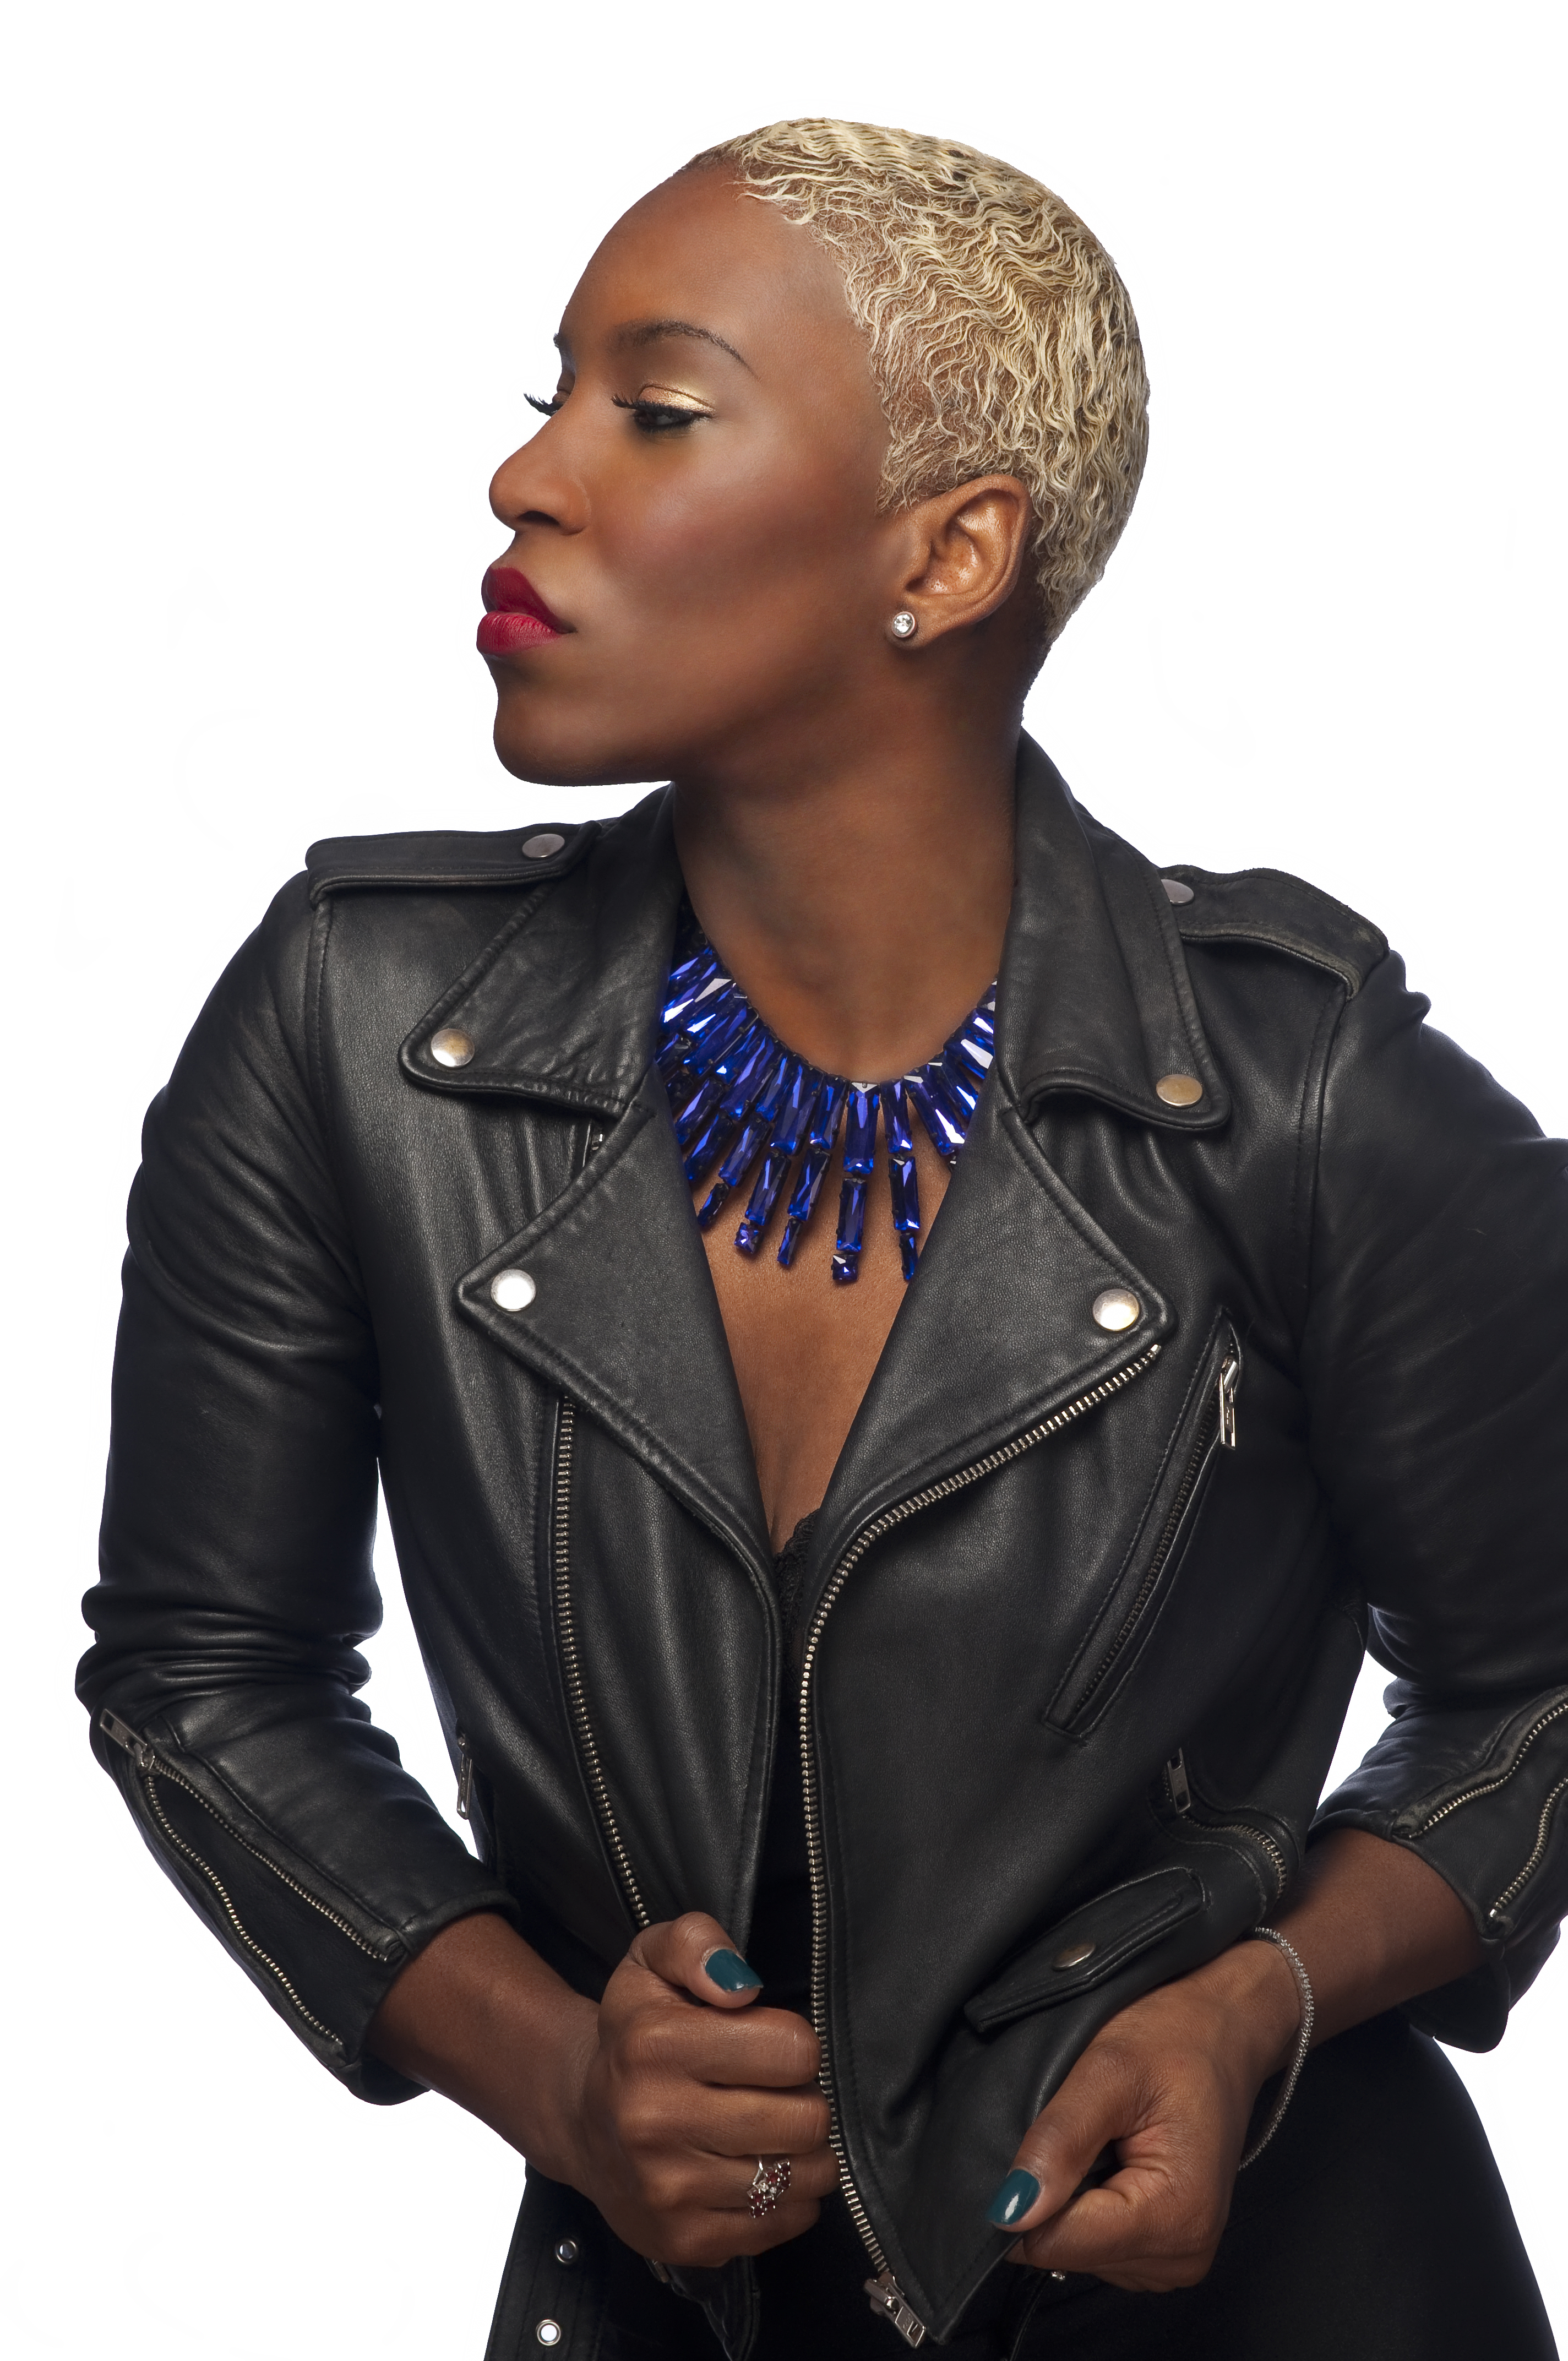 LiV Warfield/Photo credit: Chris Ottaunick